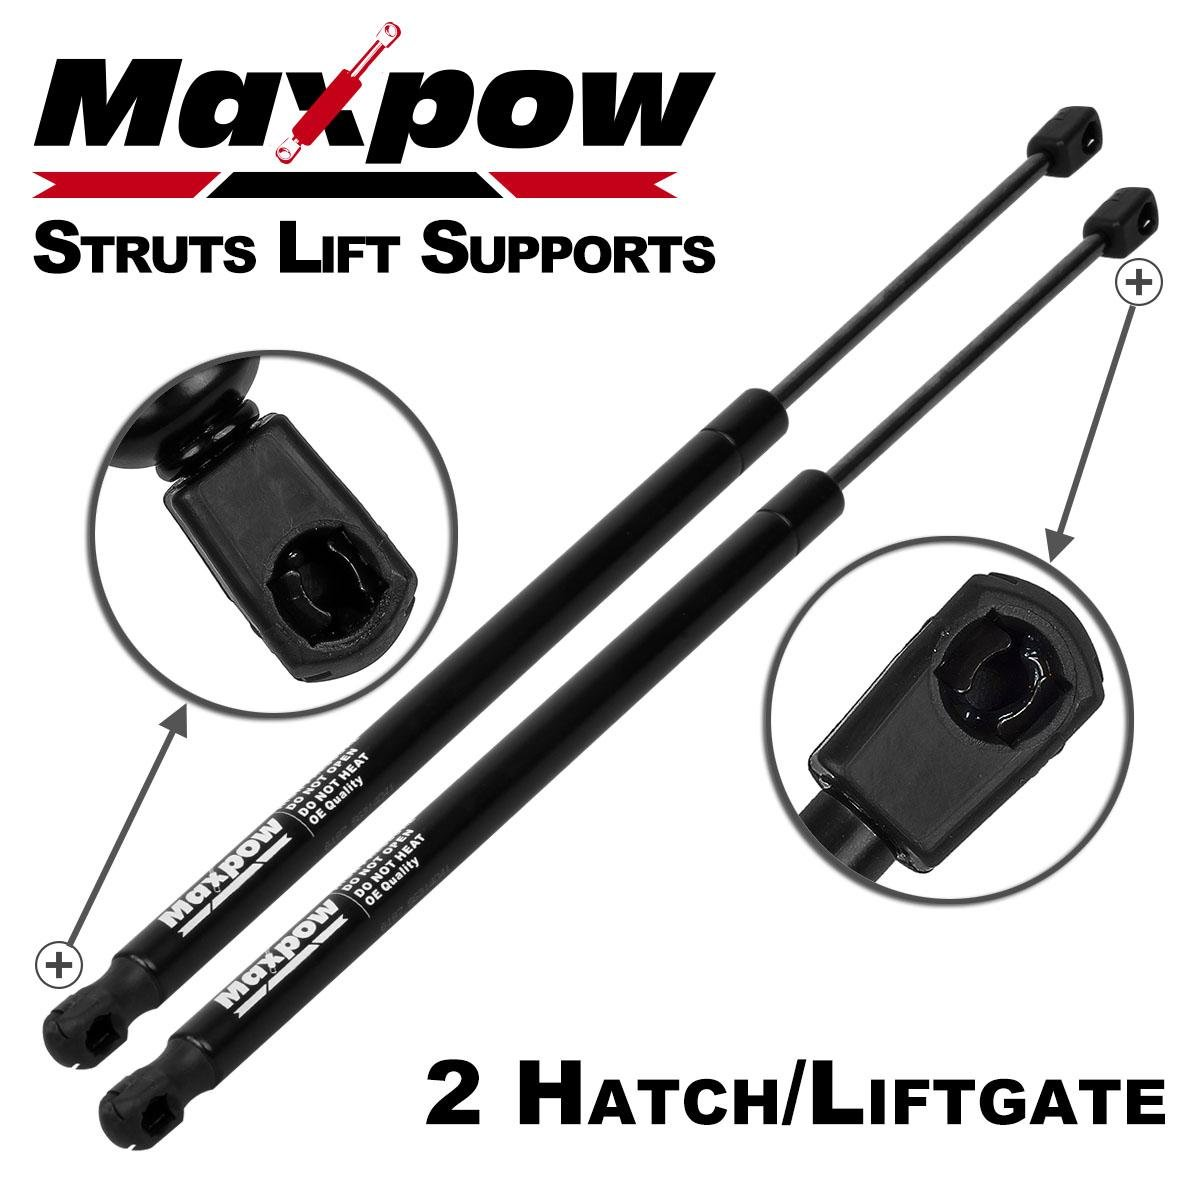 Maxpow Qty 2 Rear Hatch Gas Springs Prop Lift Support 6463 Compatible With Chevrolet Traverse 2009 2010 2011 2012 2013 2014 2015 Partsam